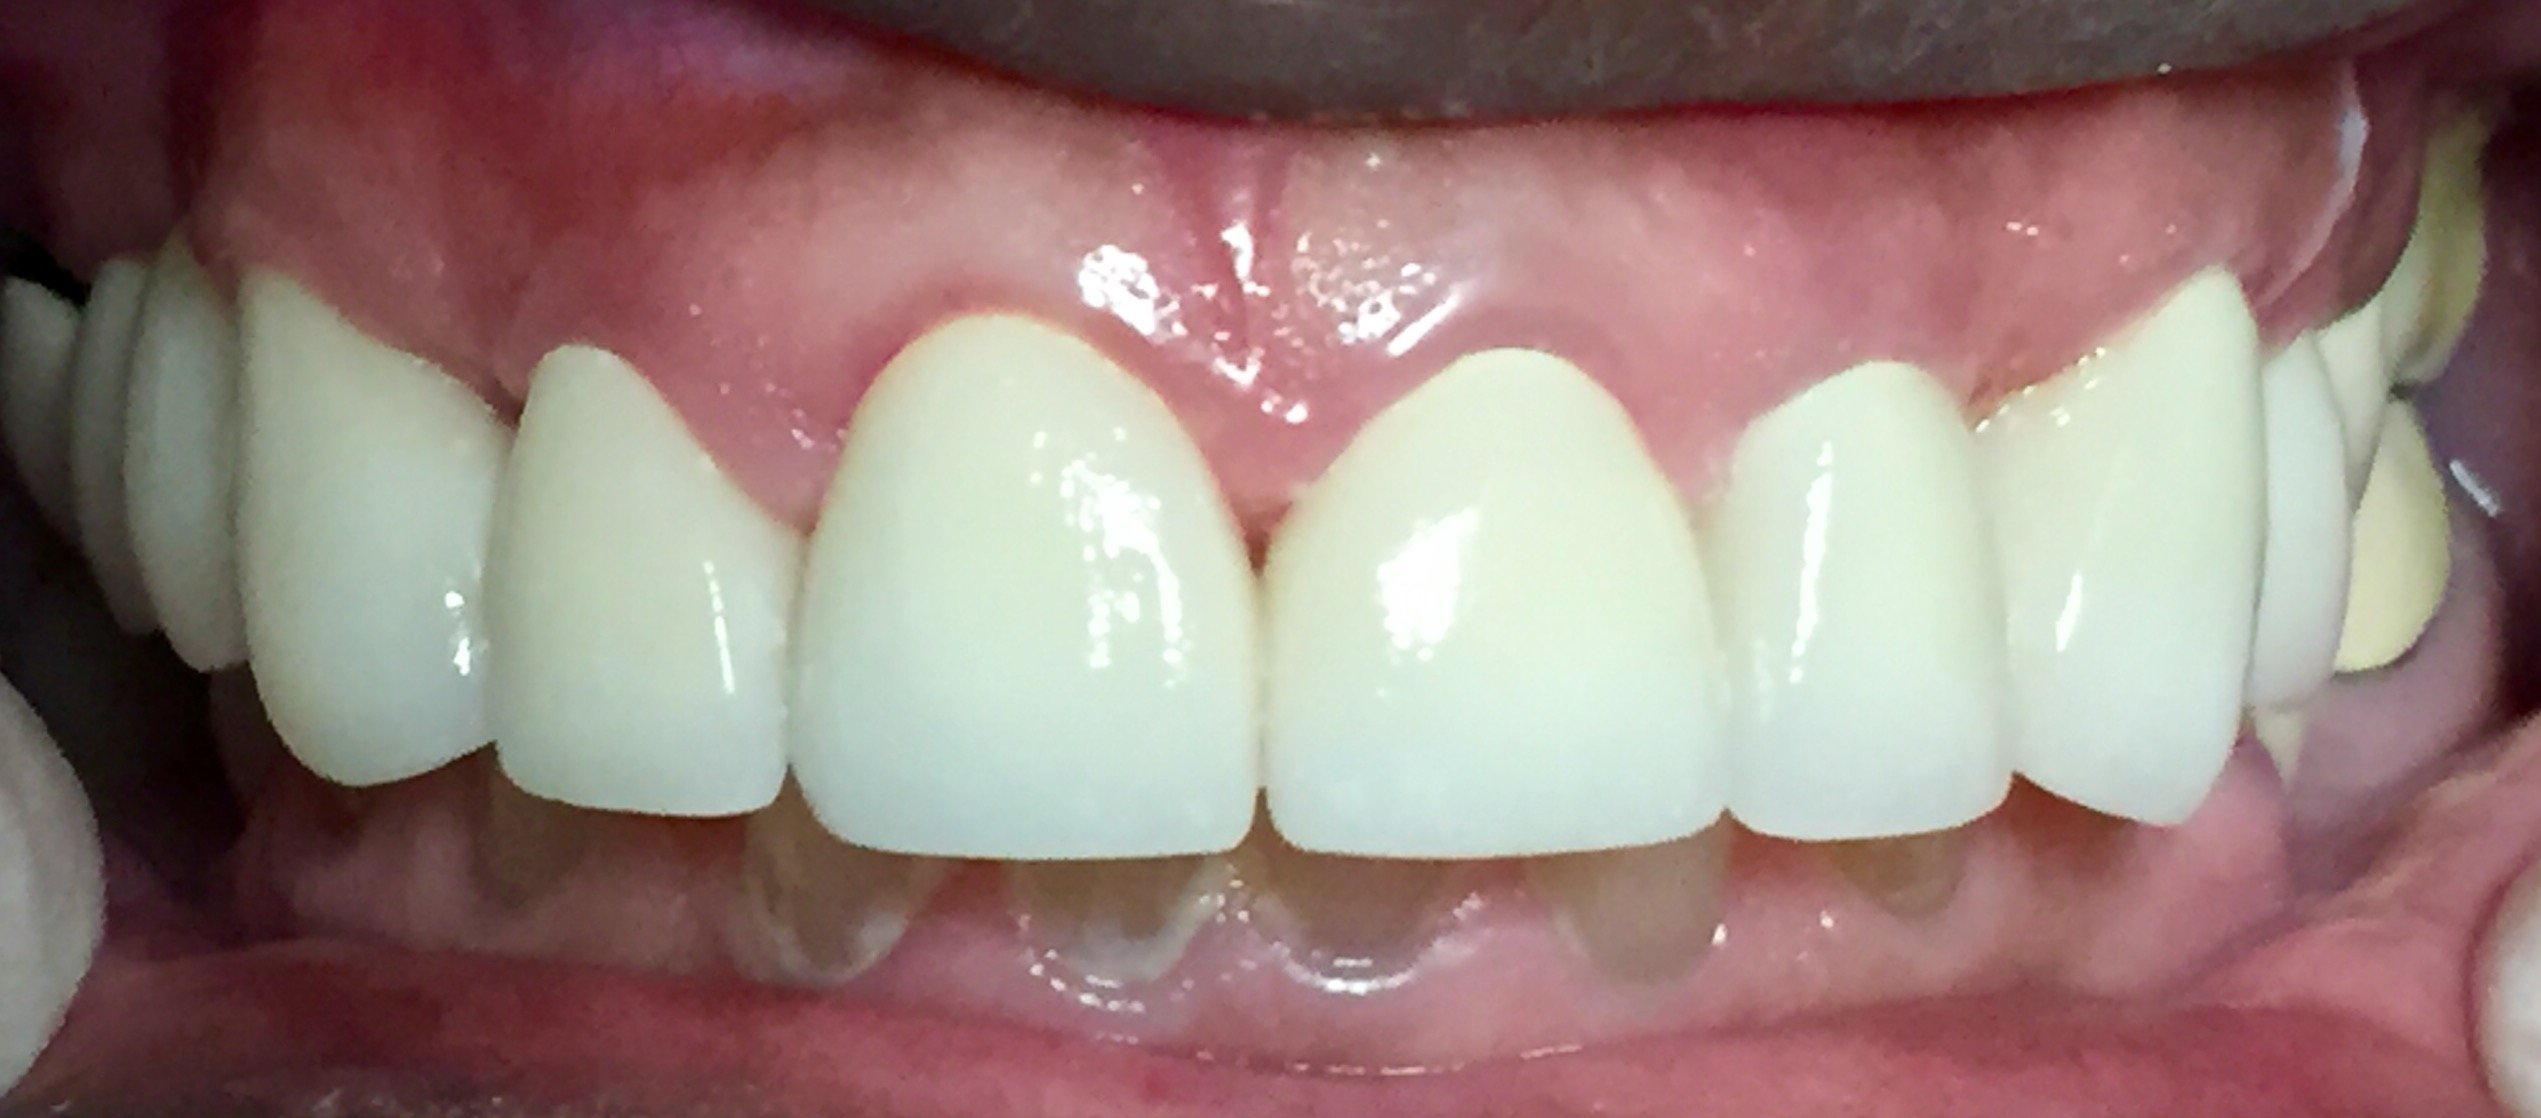 After fixing teeth